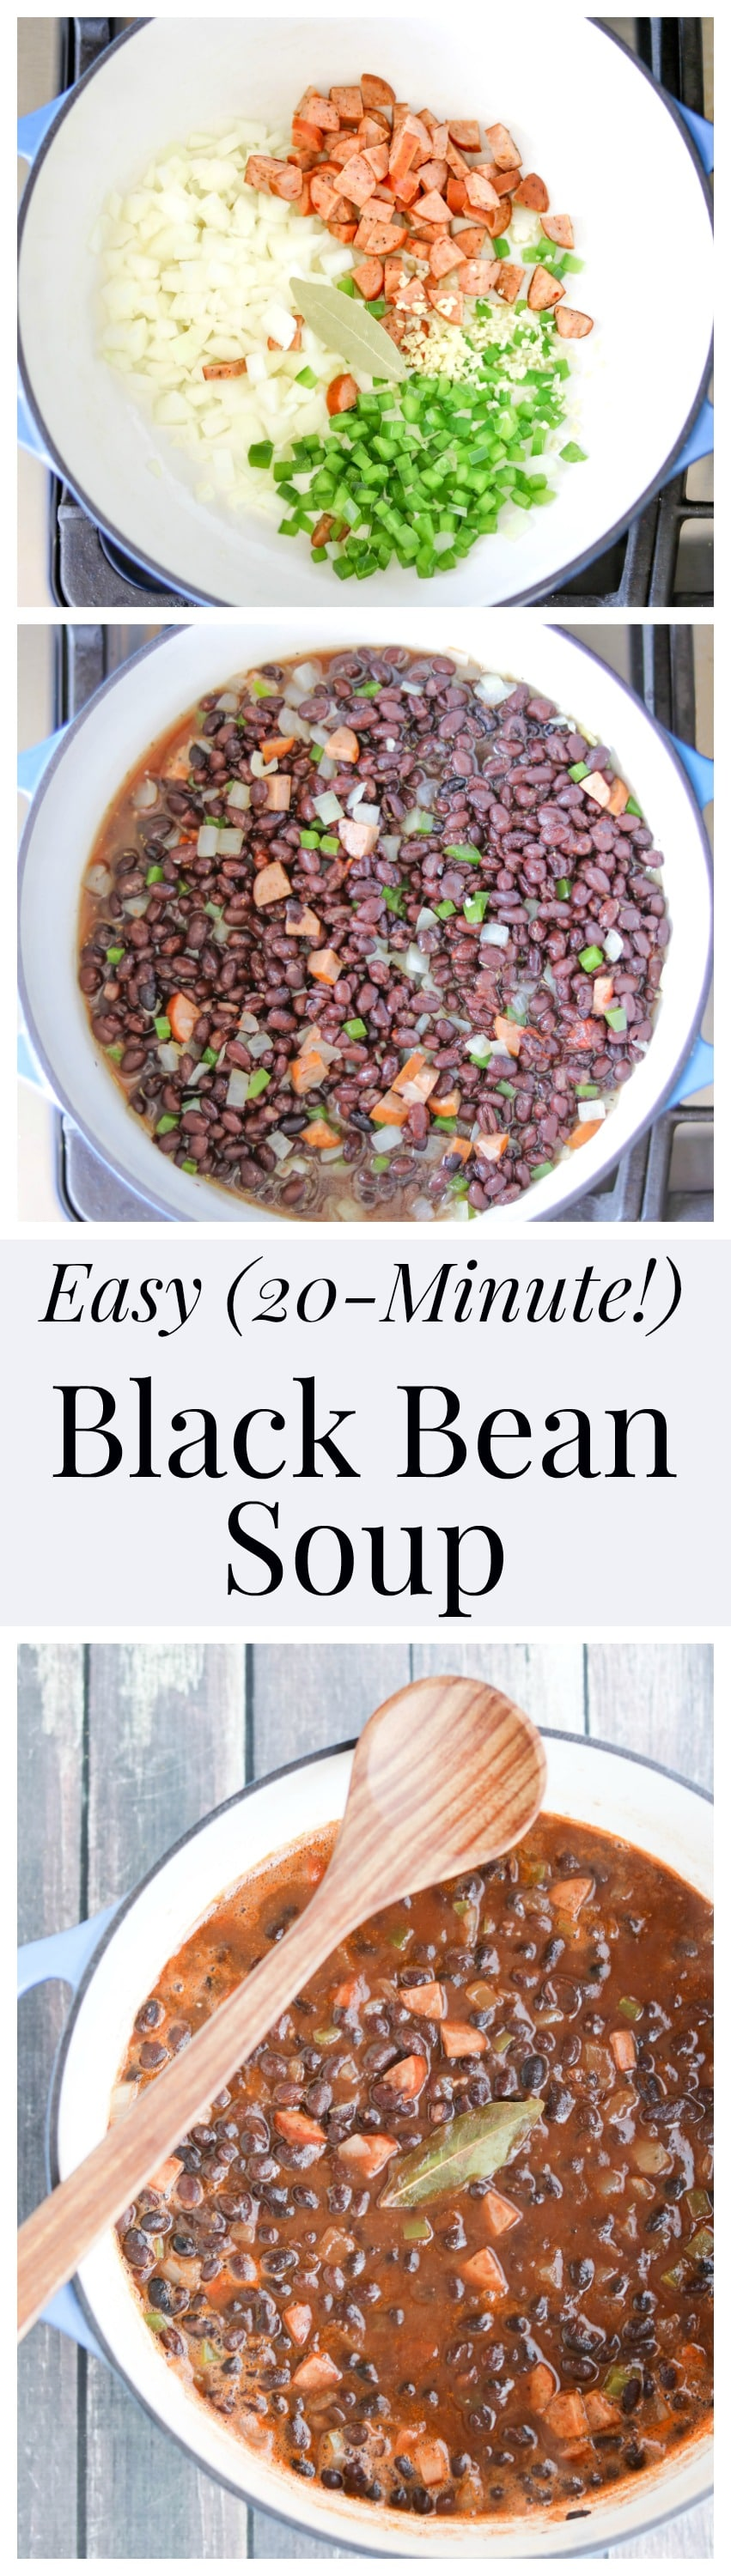 This Easy Black Bean Soup is rich, hearty and filling - and cooks in just 20 minutes! Bonus: we've got directions for crispy-crunchy Cumin-Dusted Bread Bowls that are perfect for serving this delicious soup! AD | www.TwoHealthyKitchens.com